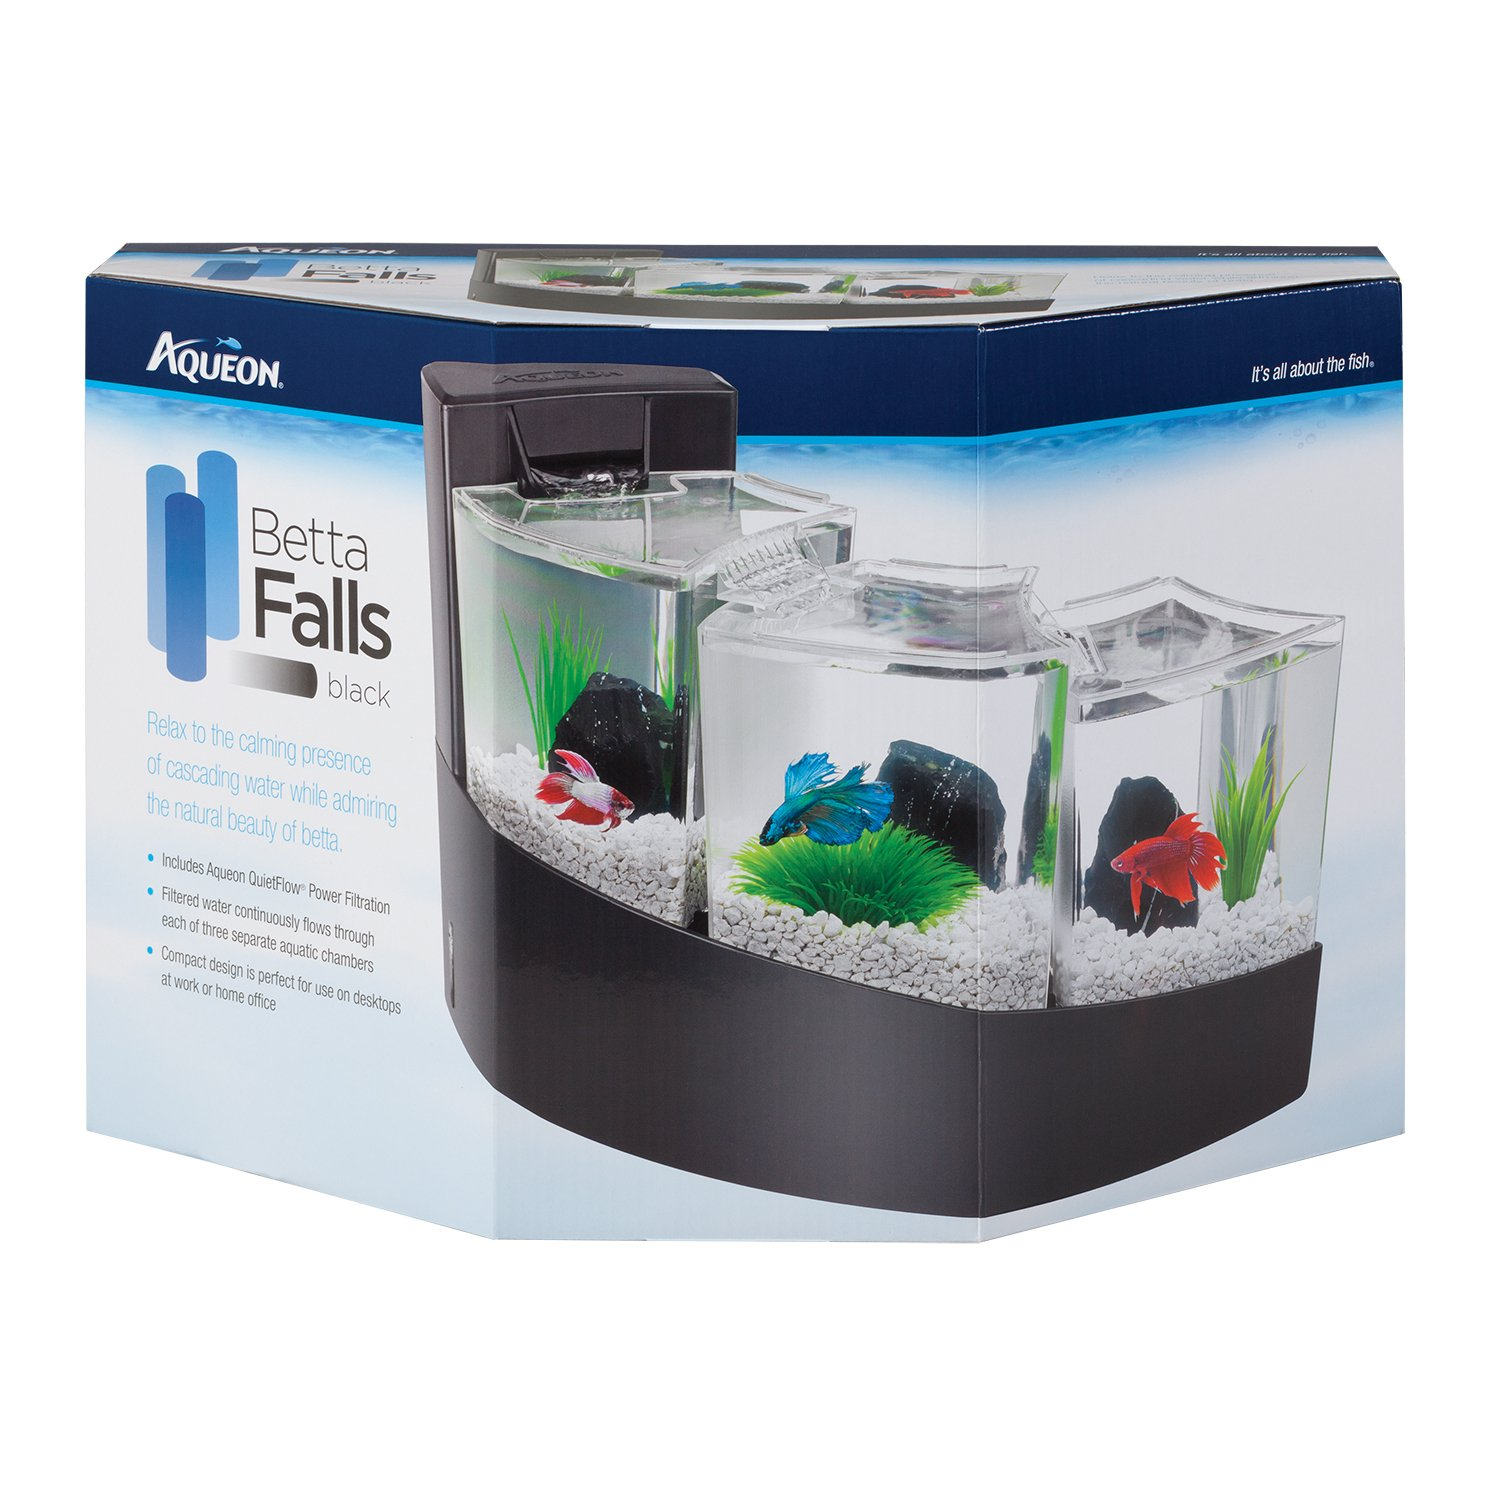 Fish aquarium price in bangalore - Fish Aquarium Price In Bangalore